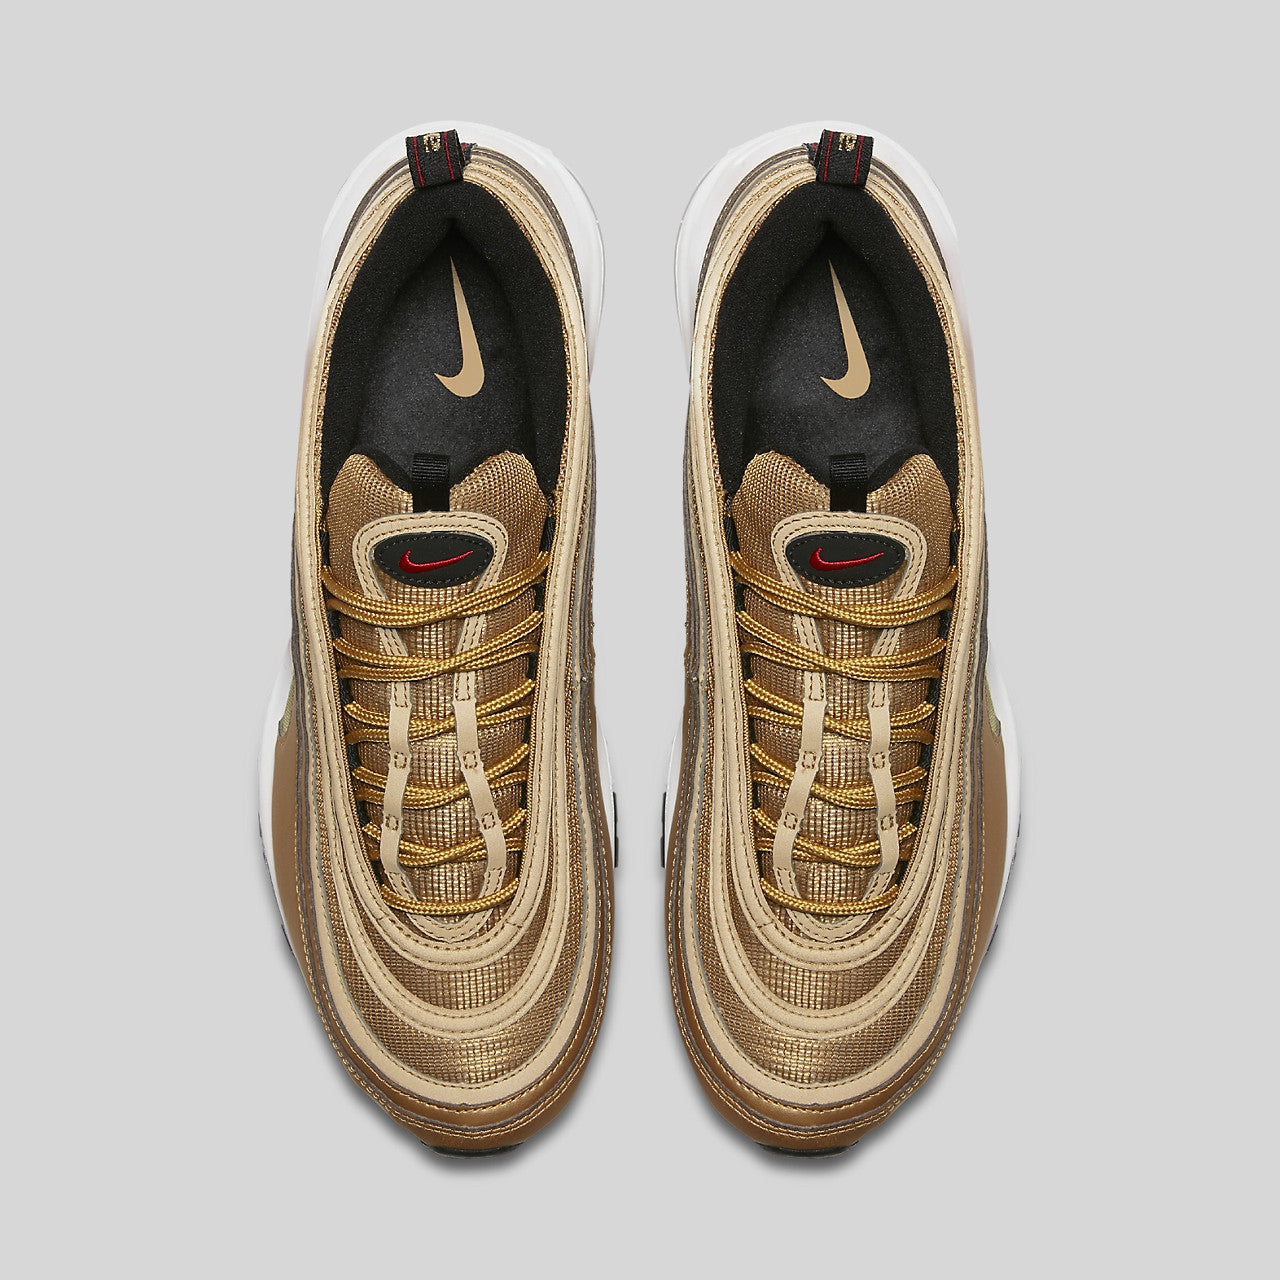 06df090e Nike Air Max 97 OG QS Metallic Gold (884421-700) | KIX-FILES